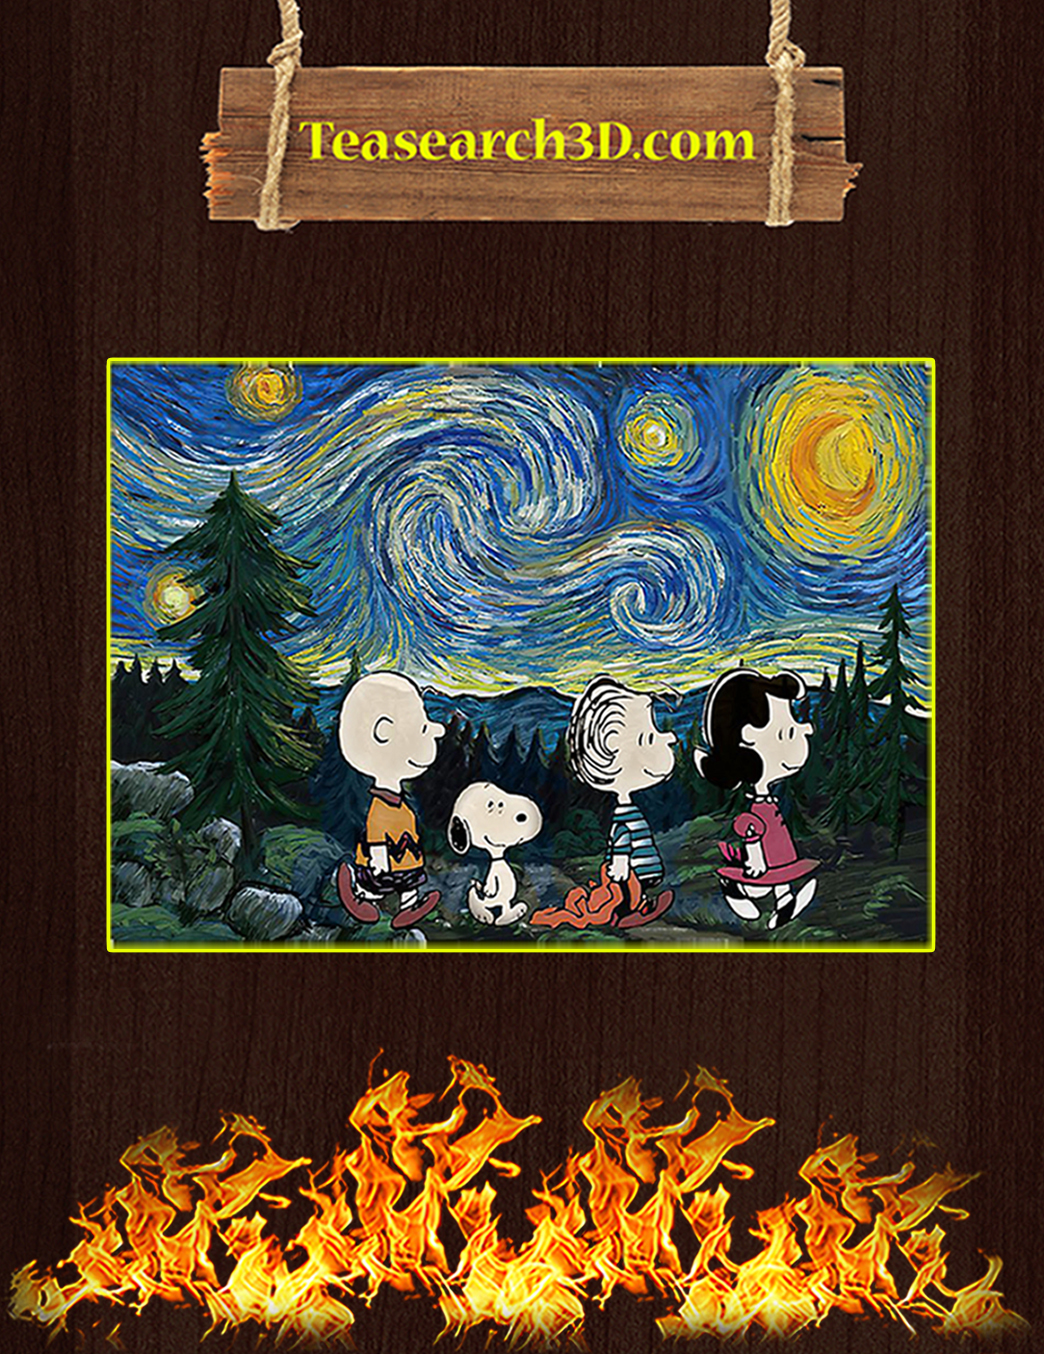 Peanuts starry night poster A1